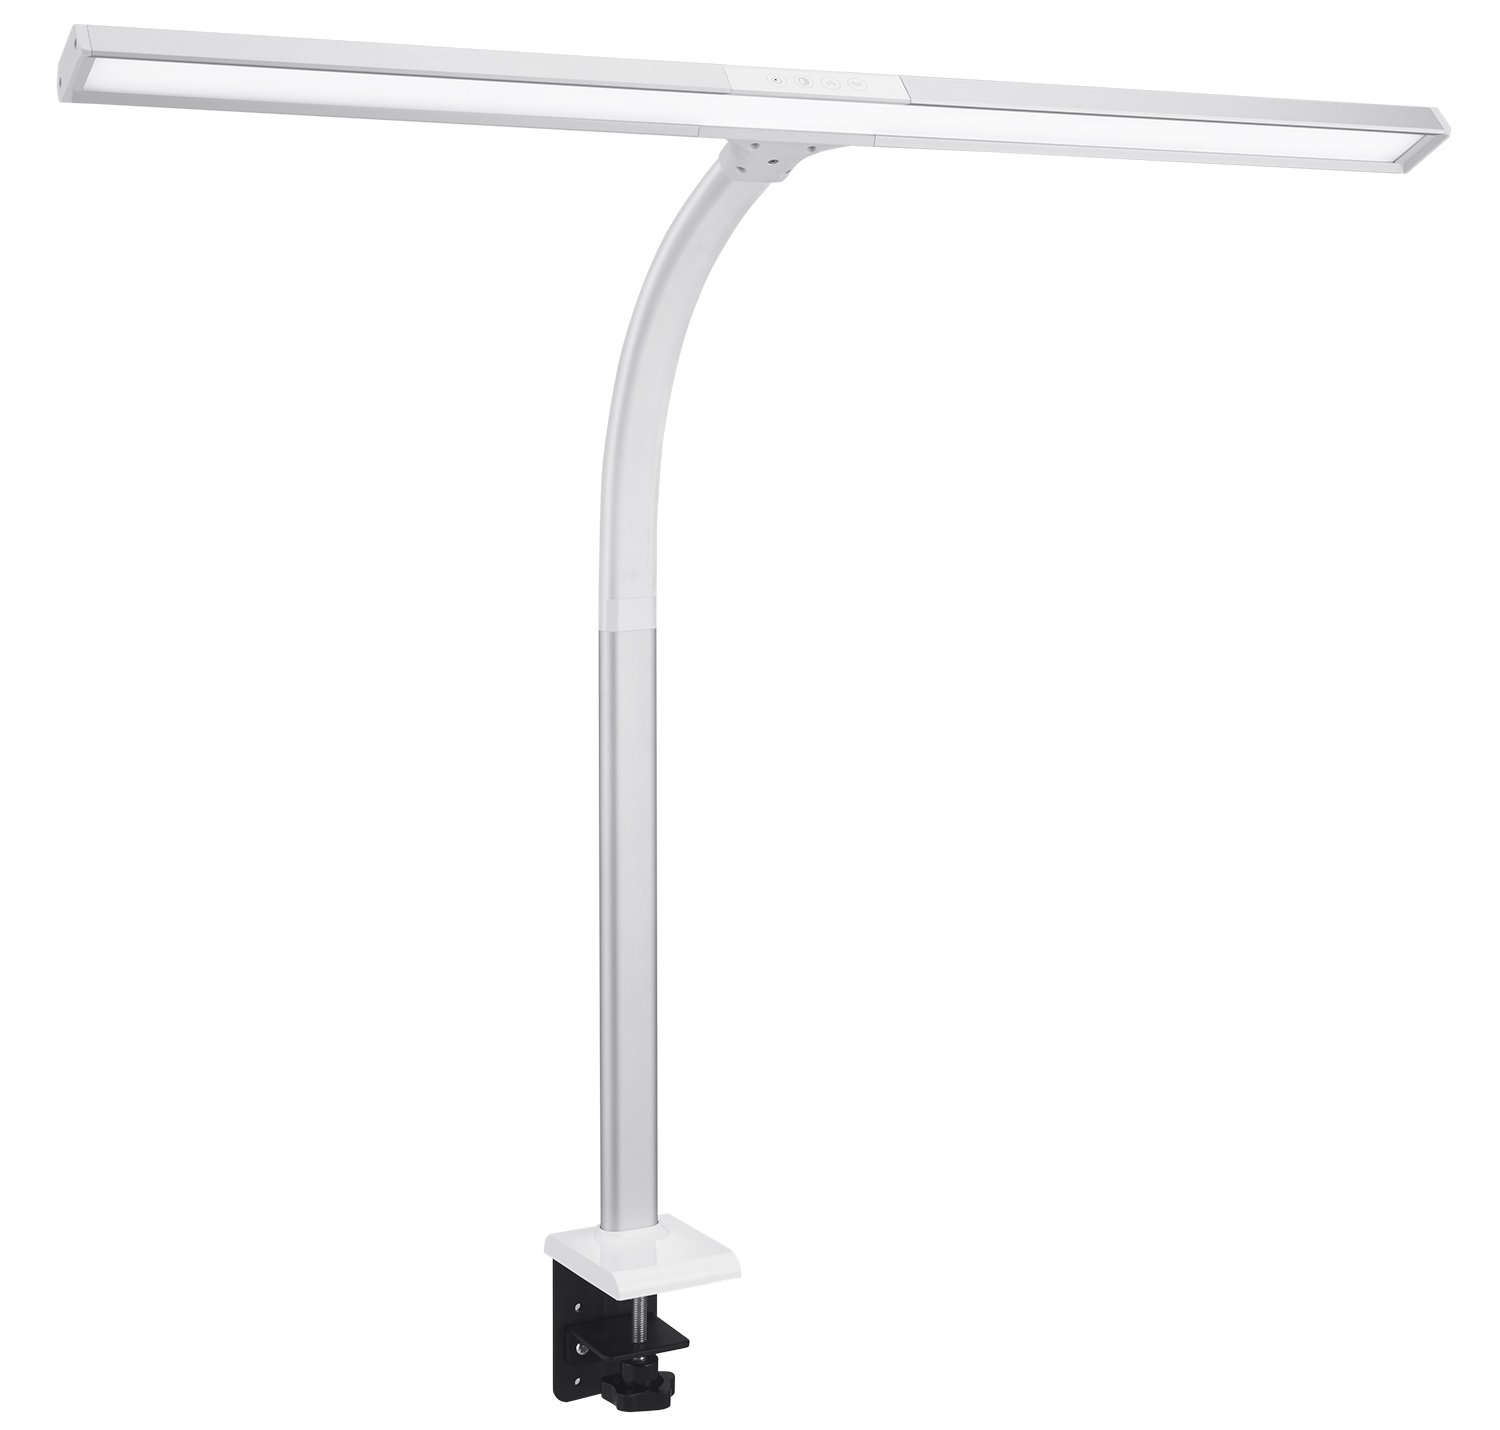 Phive LED Task Lamp, 15 Watt Super Bright Desk Lamp with Clamp, Dimmable Gooseneck Monitor Lamp(4 Color Modes, 5-Level Dimmer, Memory Function, Highly Adjustable Office Light/Workbench Lamp) Silver